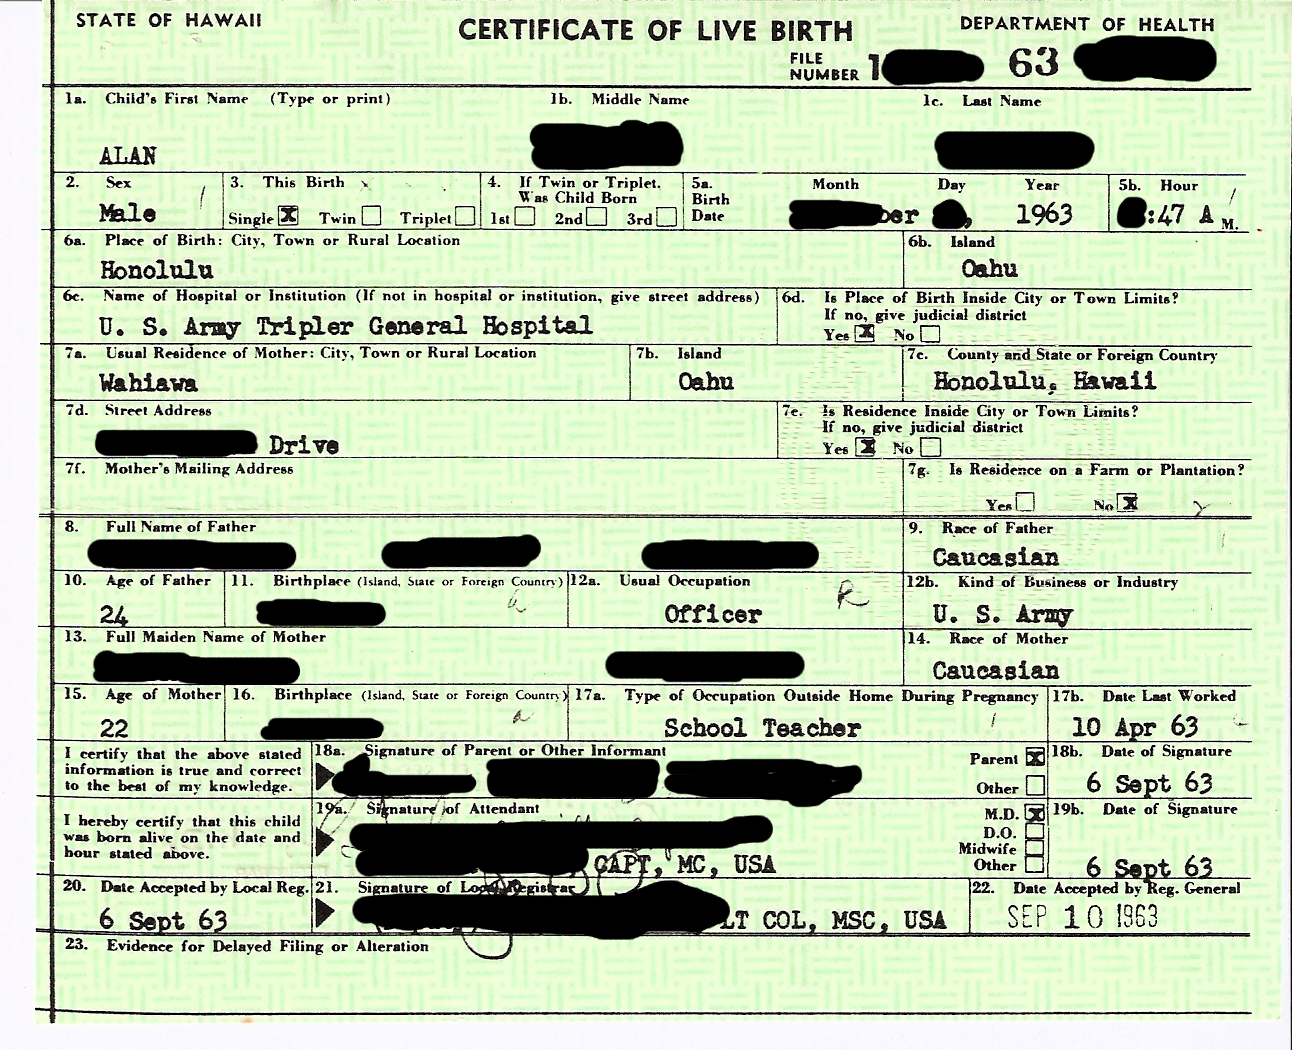 Hawaii birth certificate 1963 snarkybytes hawaii birth certificate 1963 aiddatafo Images